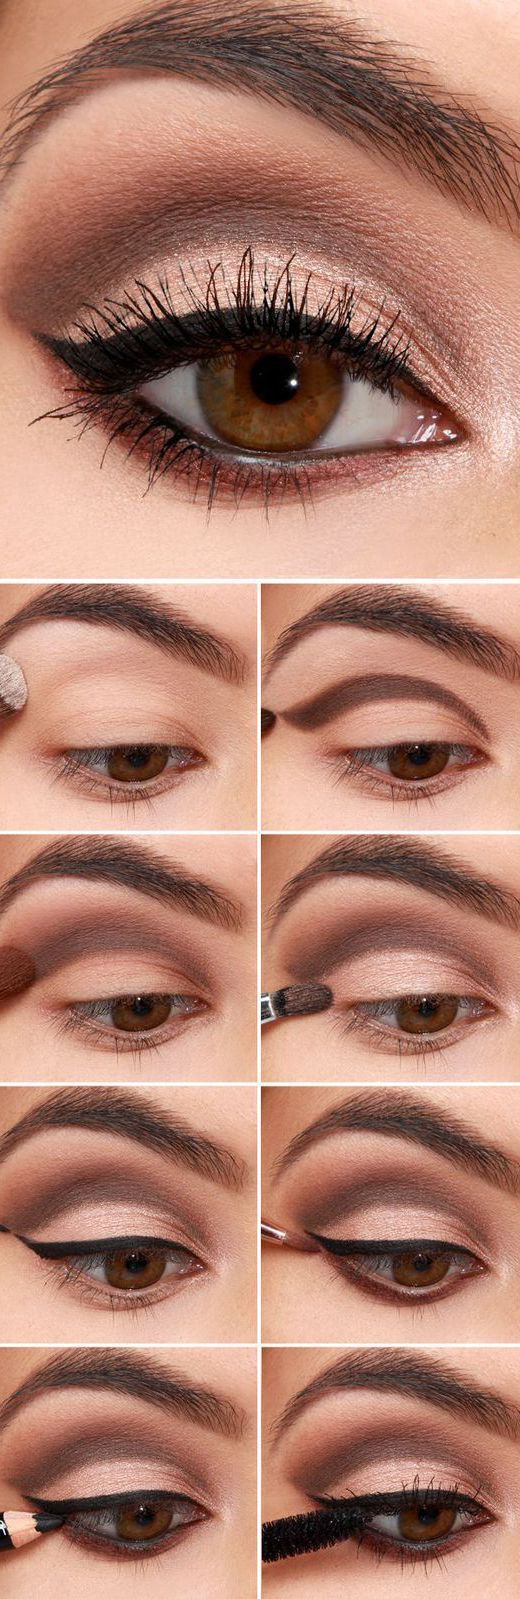 how to apply makeup step by step for beginners. 16 easy step-by-step eyeshadow tutorials for beginners: makeup beginners \u2013 brown cut crease with eyeliner how to apply step by